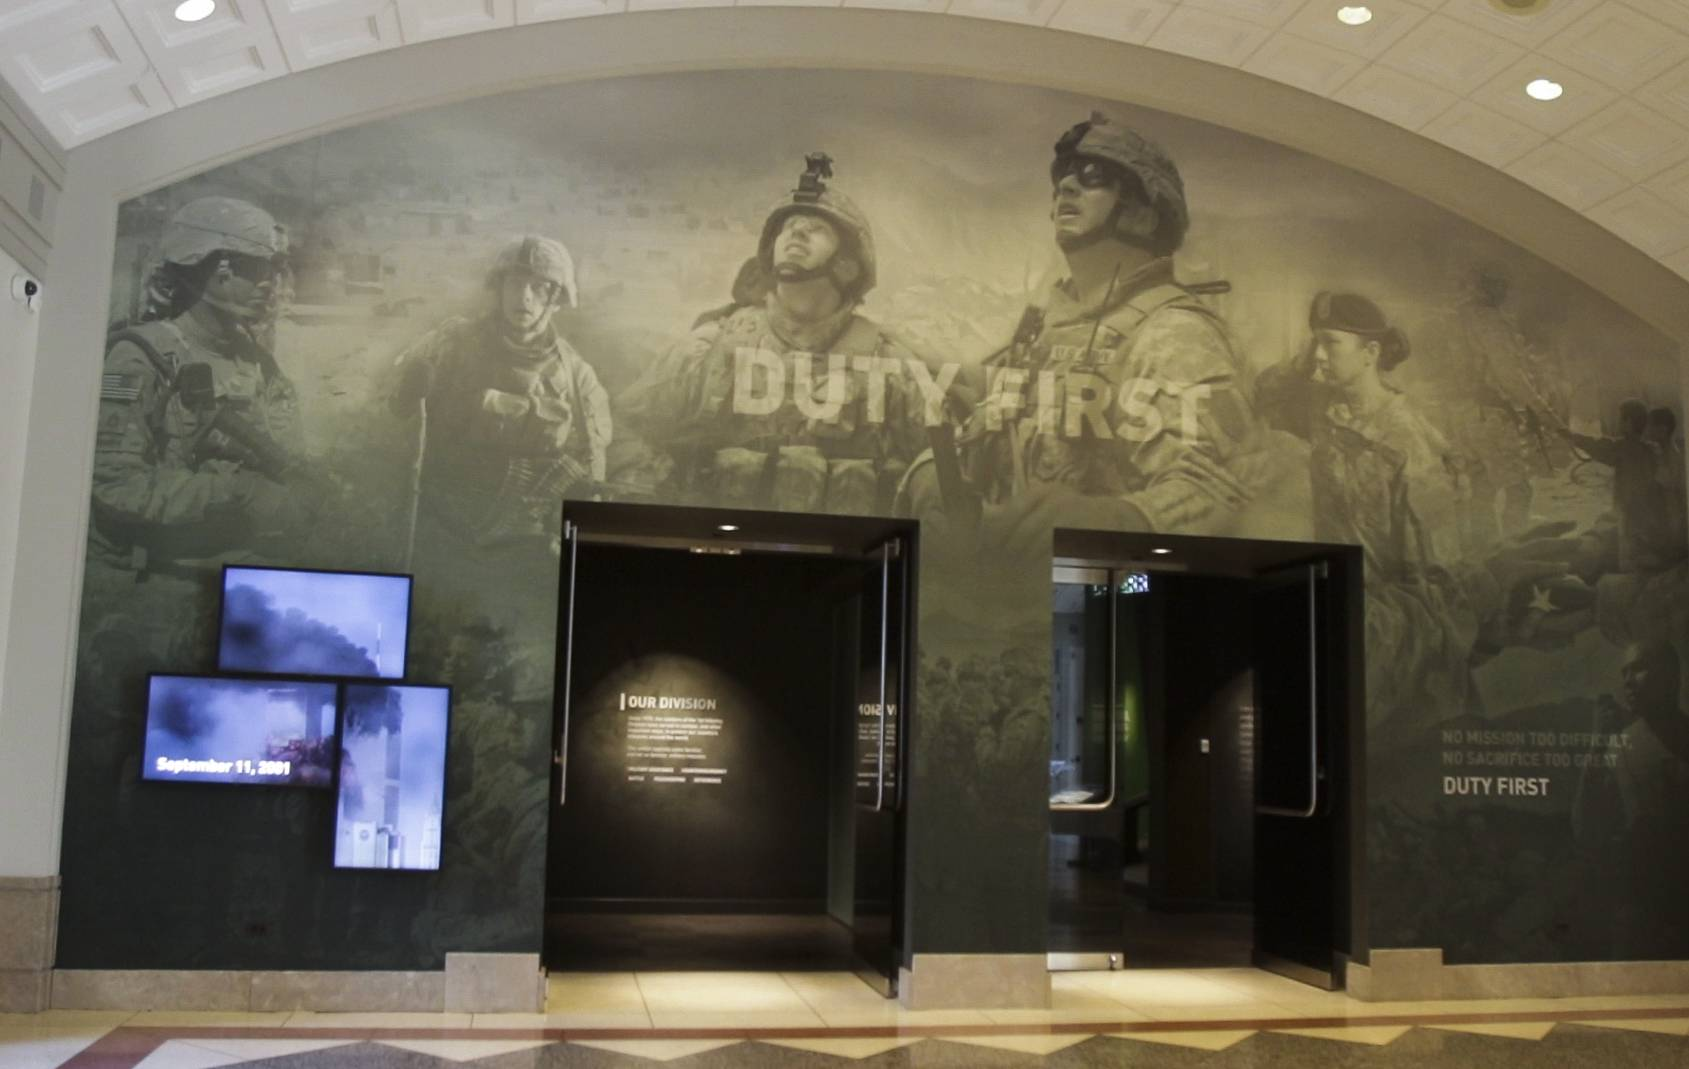 "The First Division Museum at Cantigny Park in Wheaton will reopen Saturday after a roughly $8.5 million project to renovate exhibits and repair infrastructure. A new gallery, called ""Duty First,"" highlights the contemporary missions of the Army's 1st Infantry Division. At the entrance is a media timeline with video from Sept. 11, 2001."